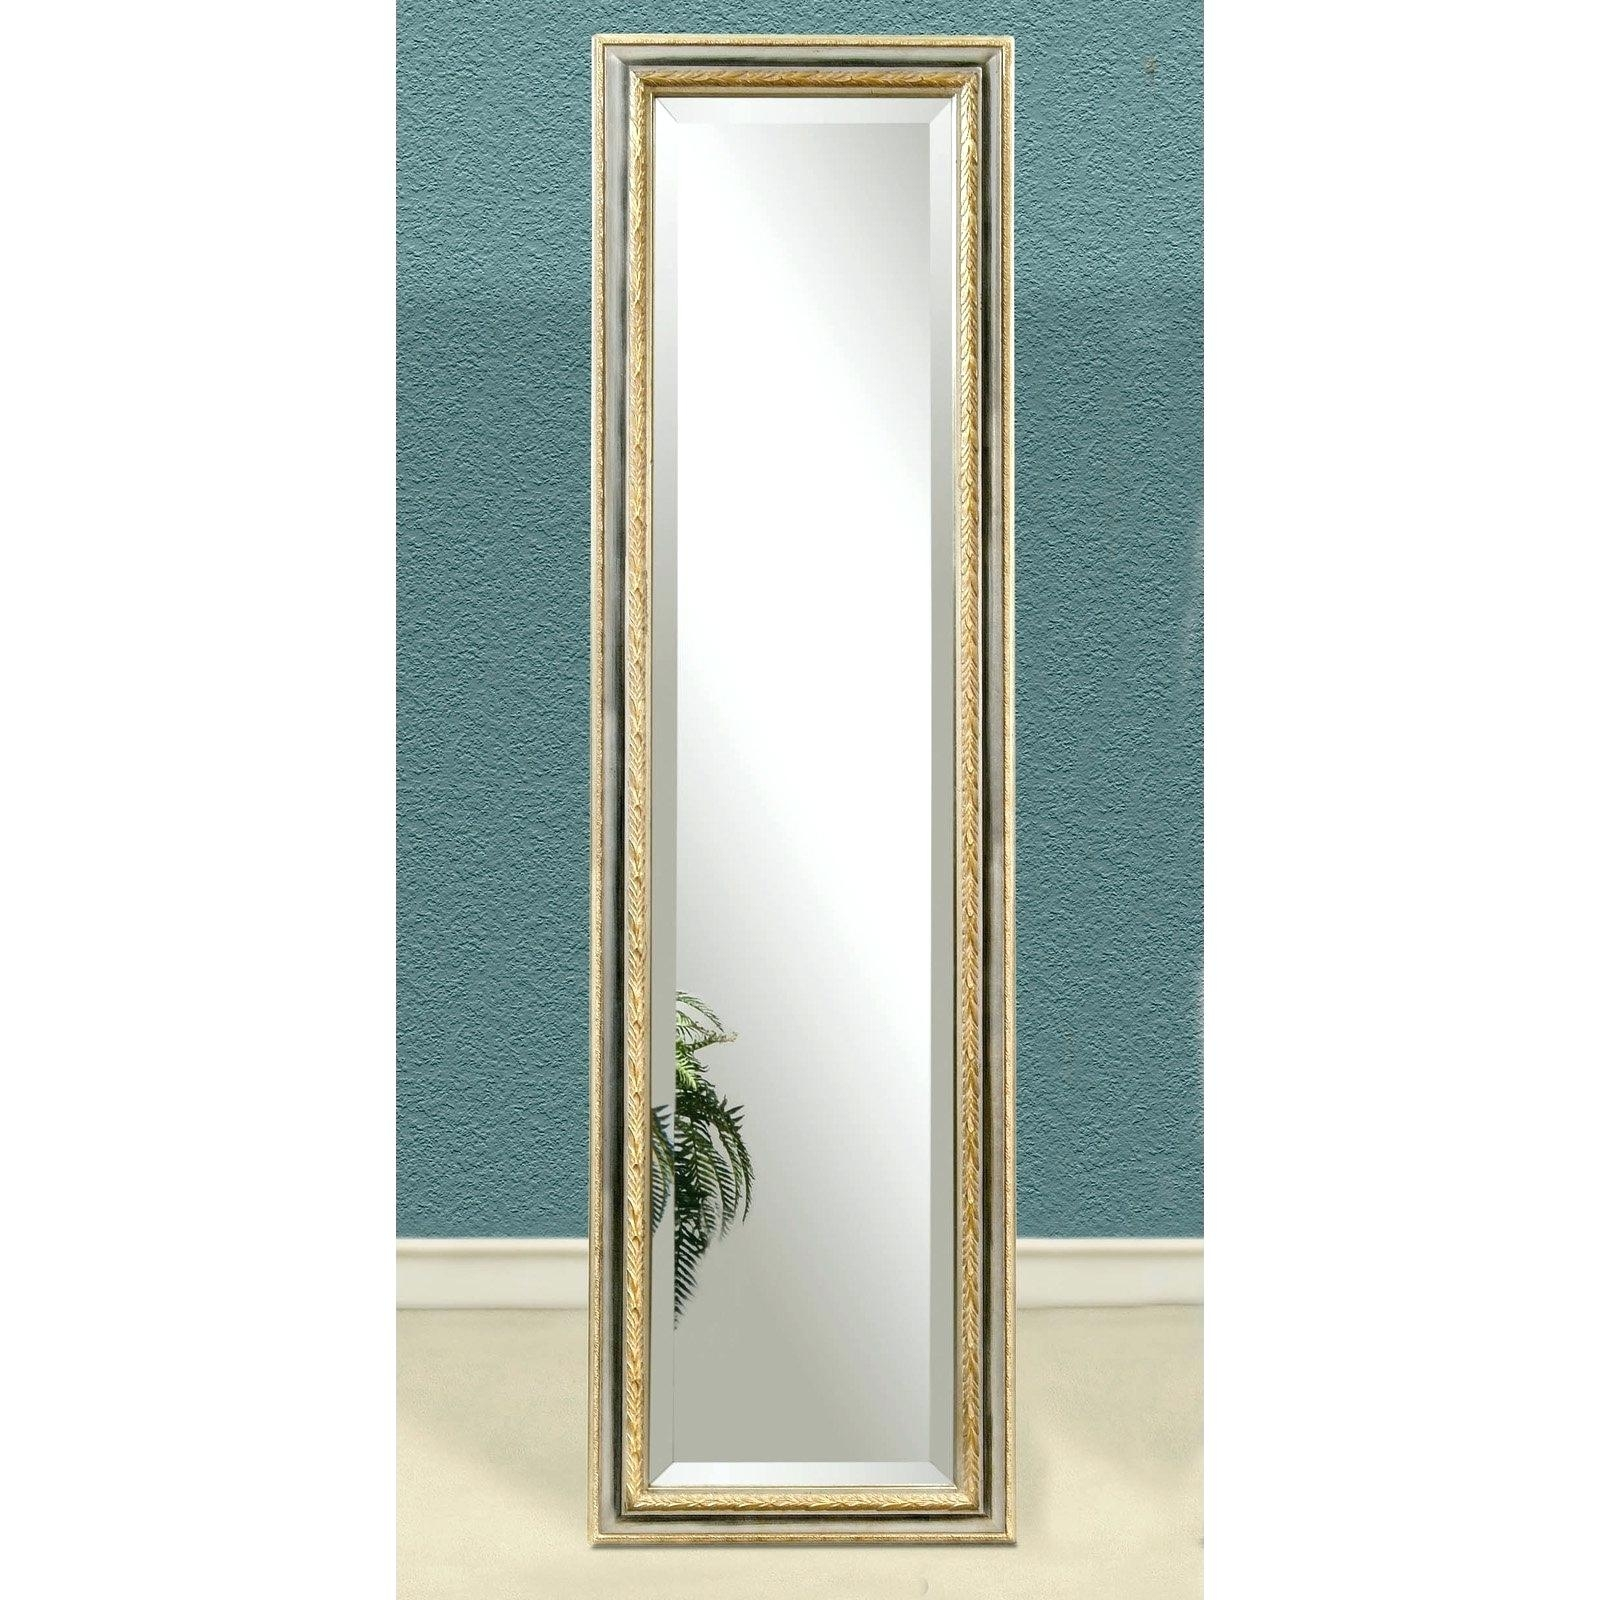 Uplift Mirror Medicine Cabinet Full Length 63 In Wall With Quality In Silver Full Length Mirror (Image 14 of 15)